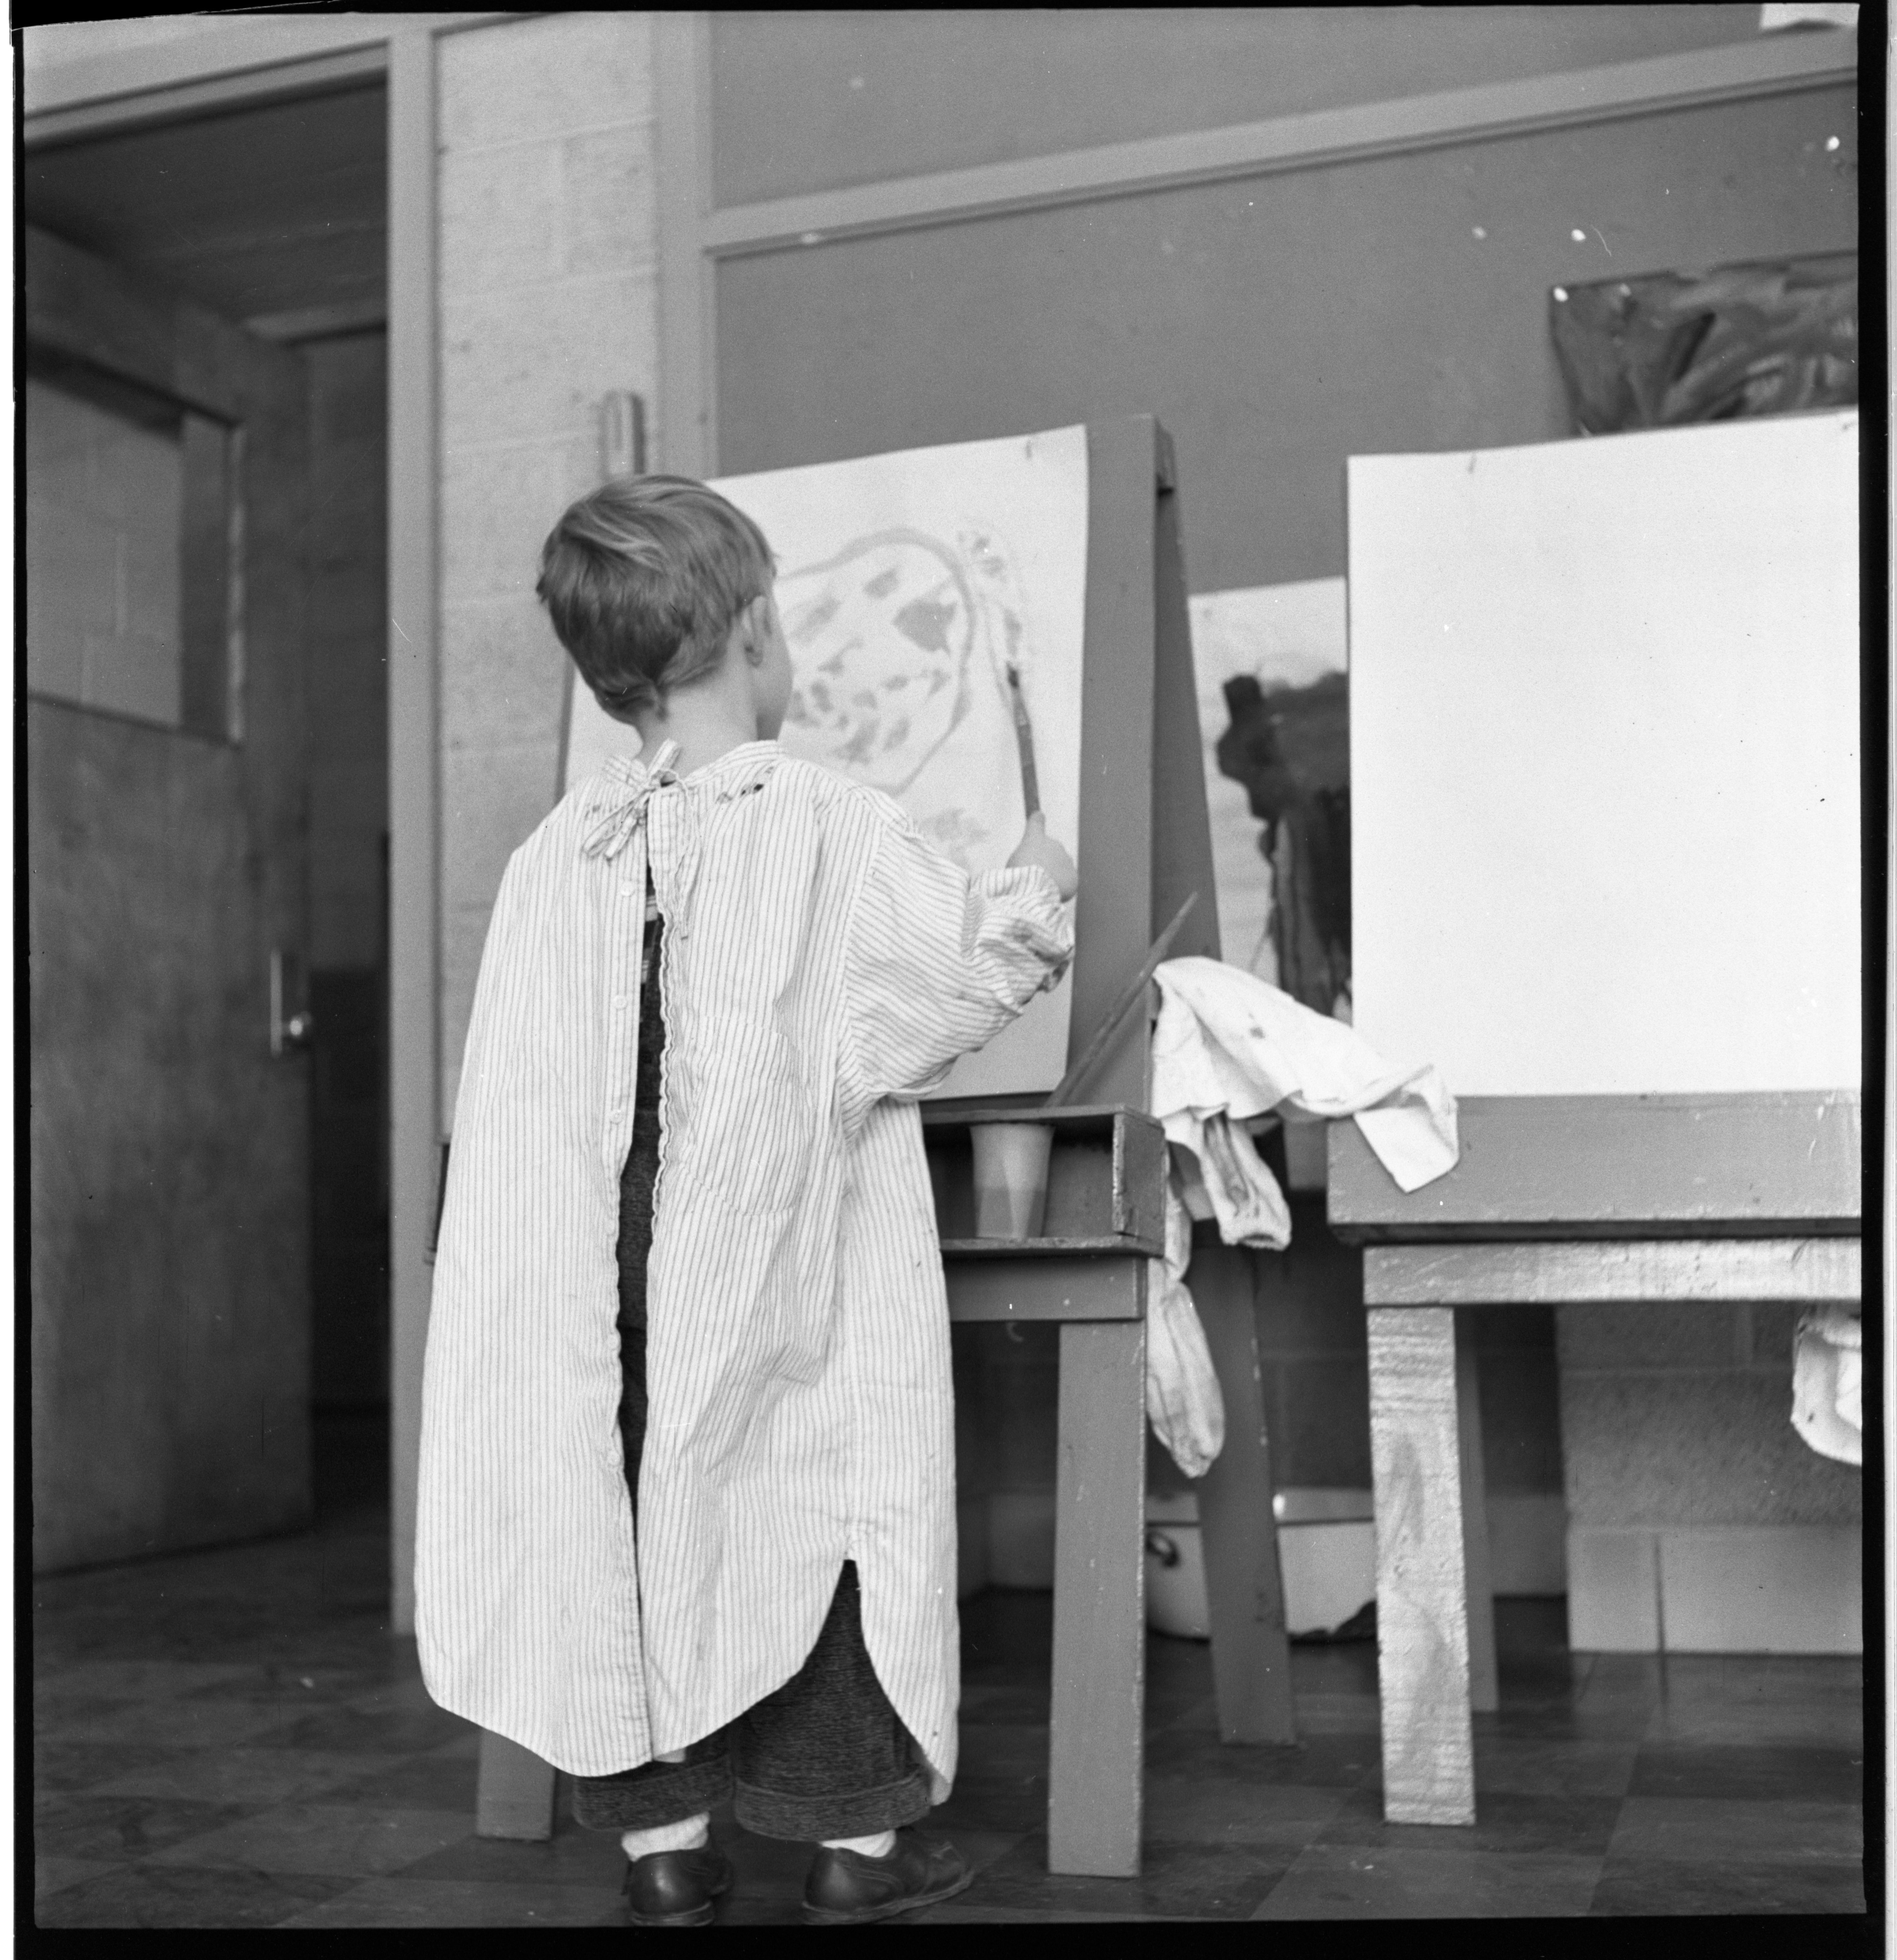 Bruce Wilson Works On A Painting At The Ann Arbor Co-Operative Nursery School, January 1955 image